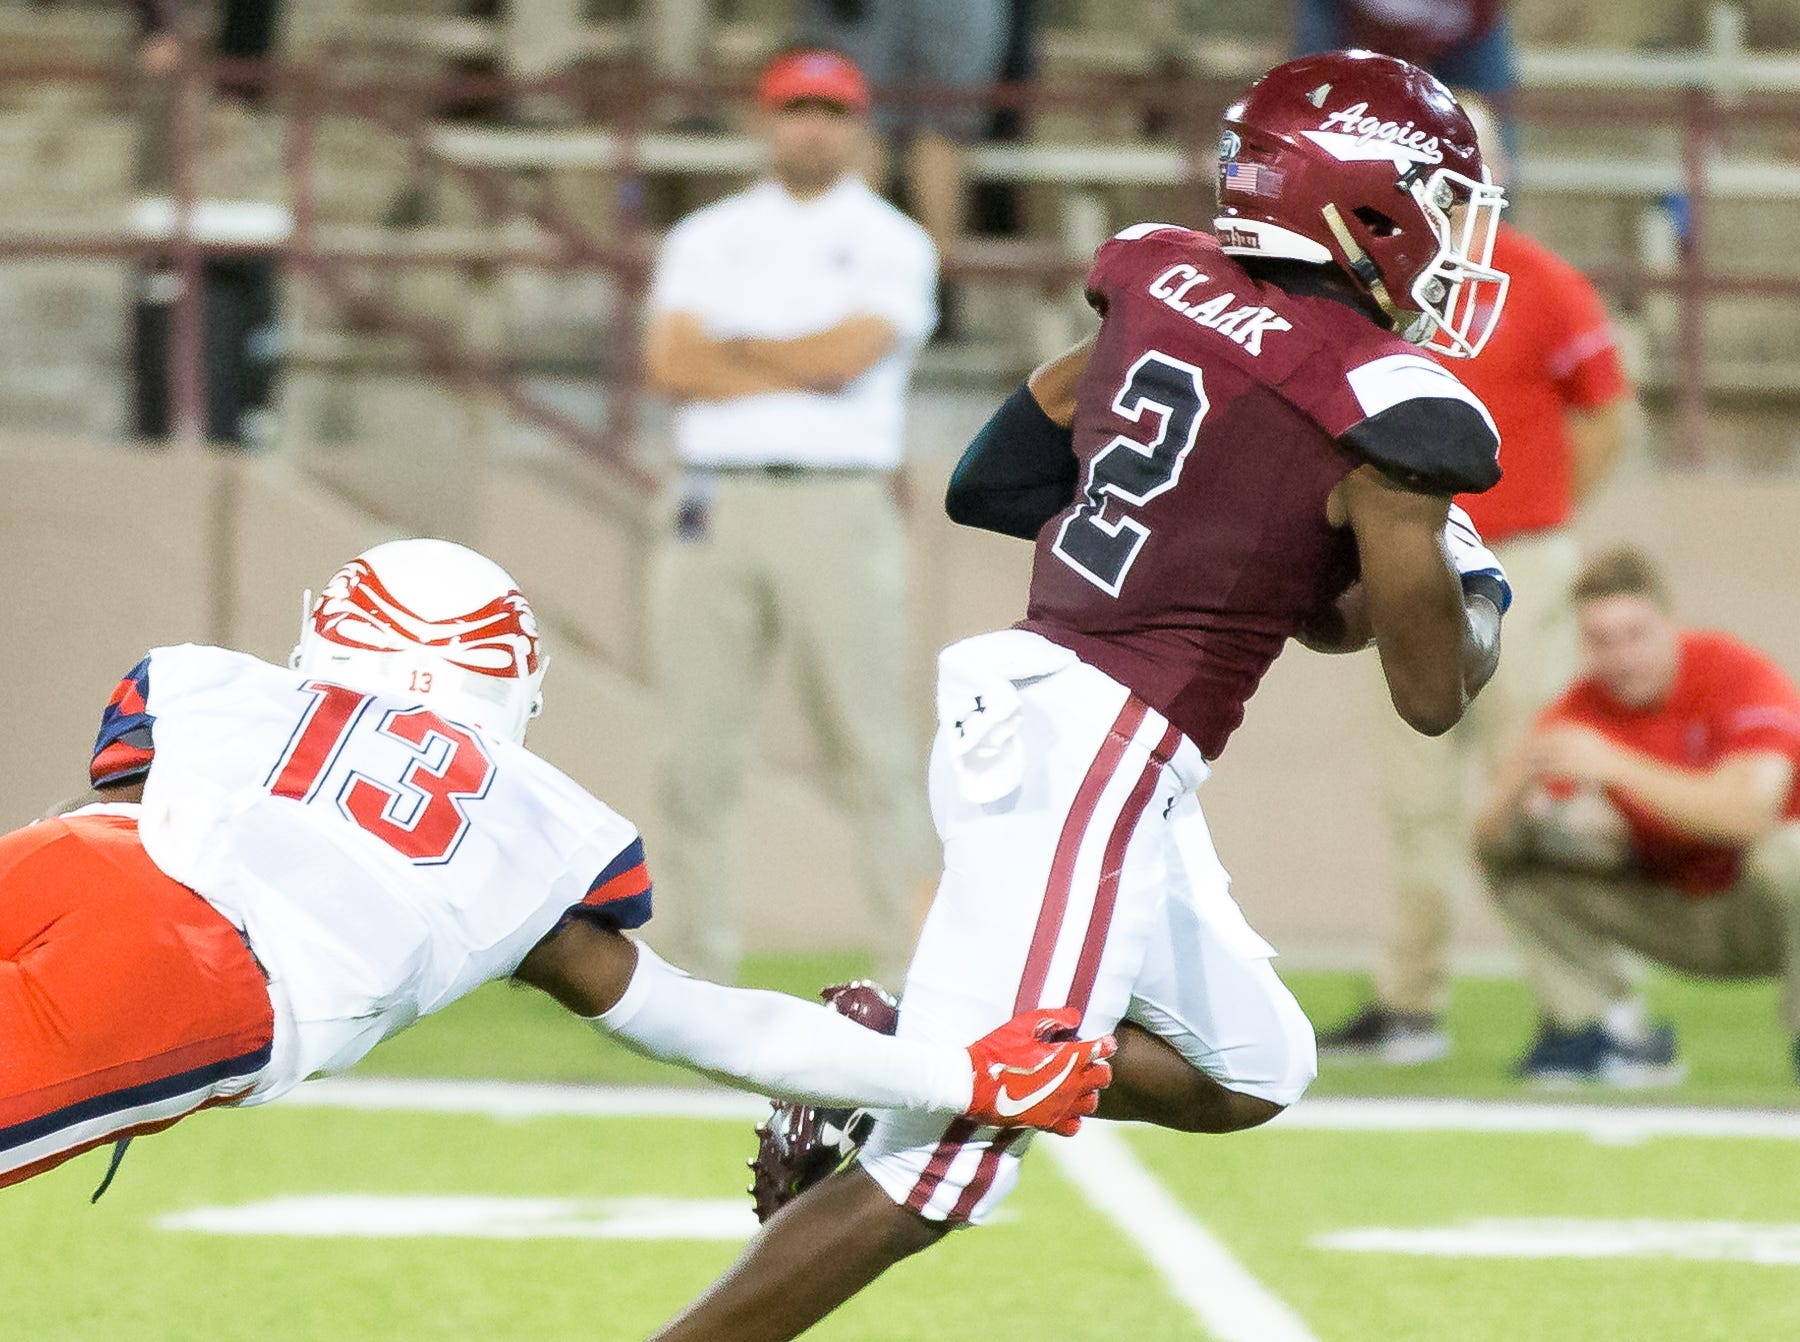 NMSU wide receiver OJ Clark, runs the ball in for a touchdown as Liberty defender Isaac Steele tries to make the stop on Saturday, Oct. 6, 2018, at the Aggie Memorial Stadium.